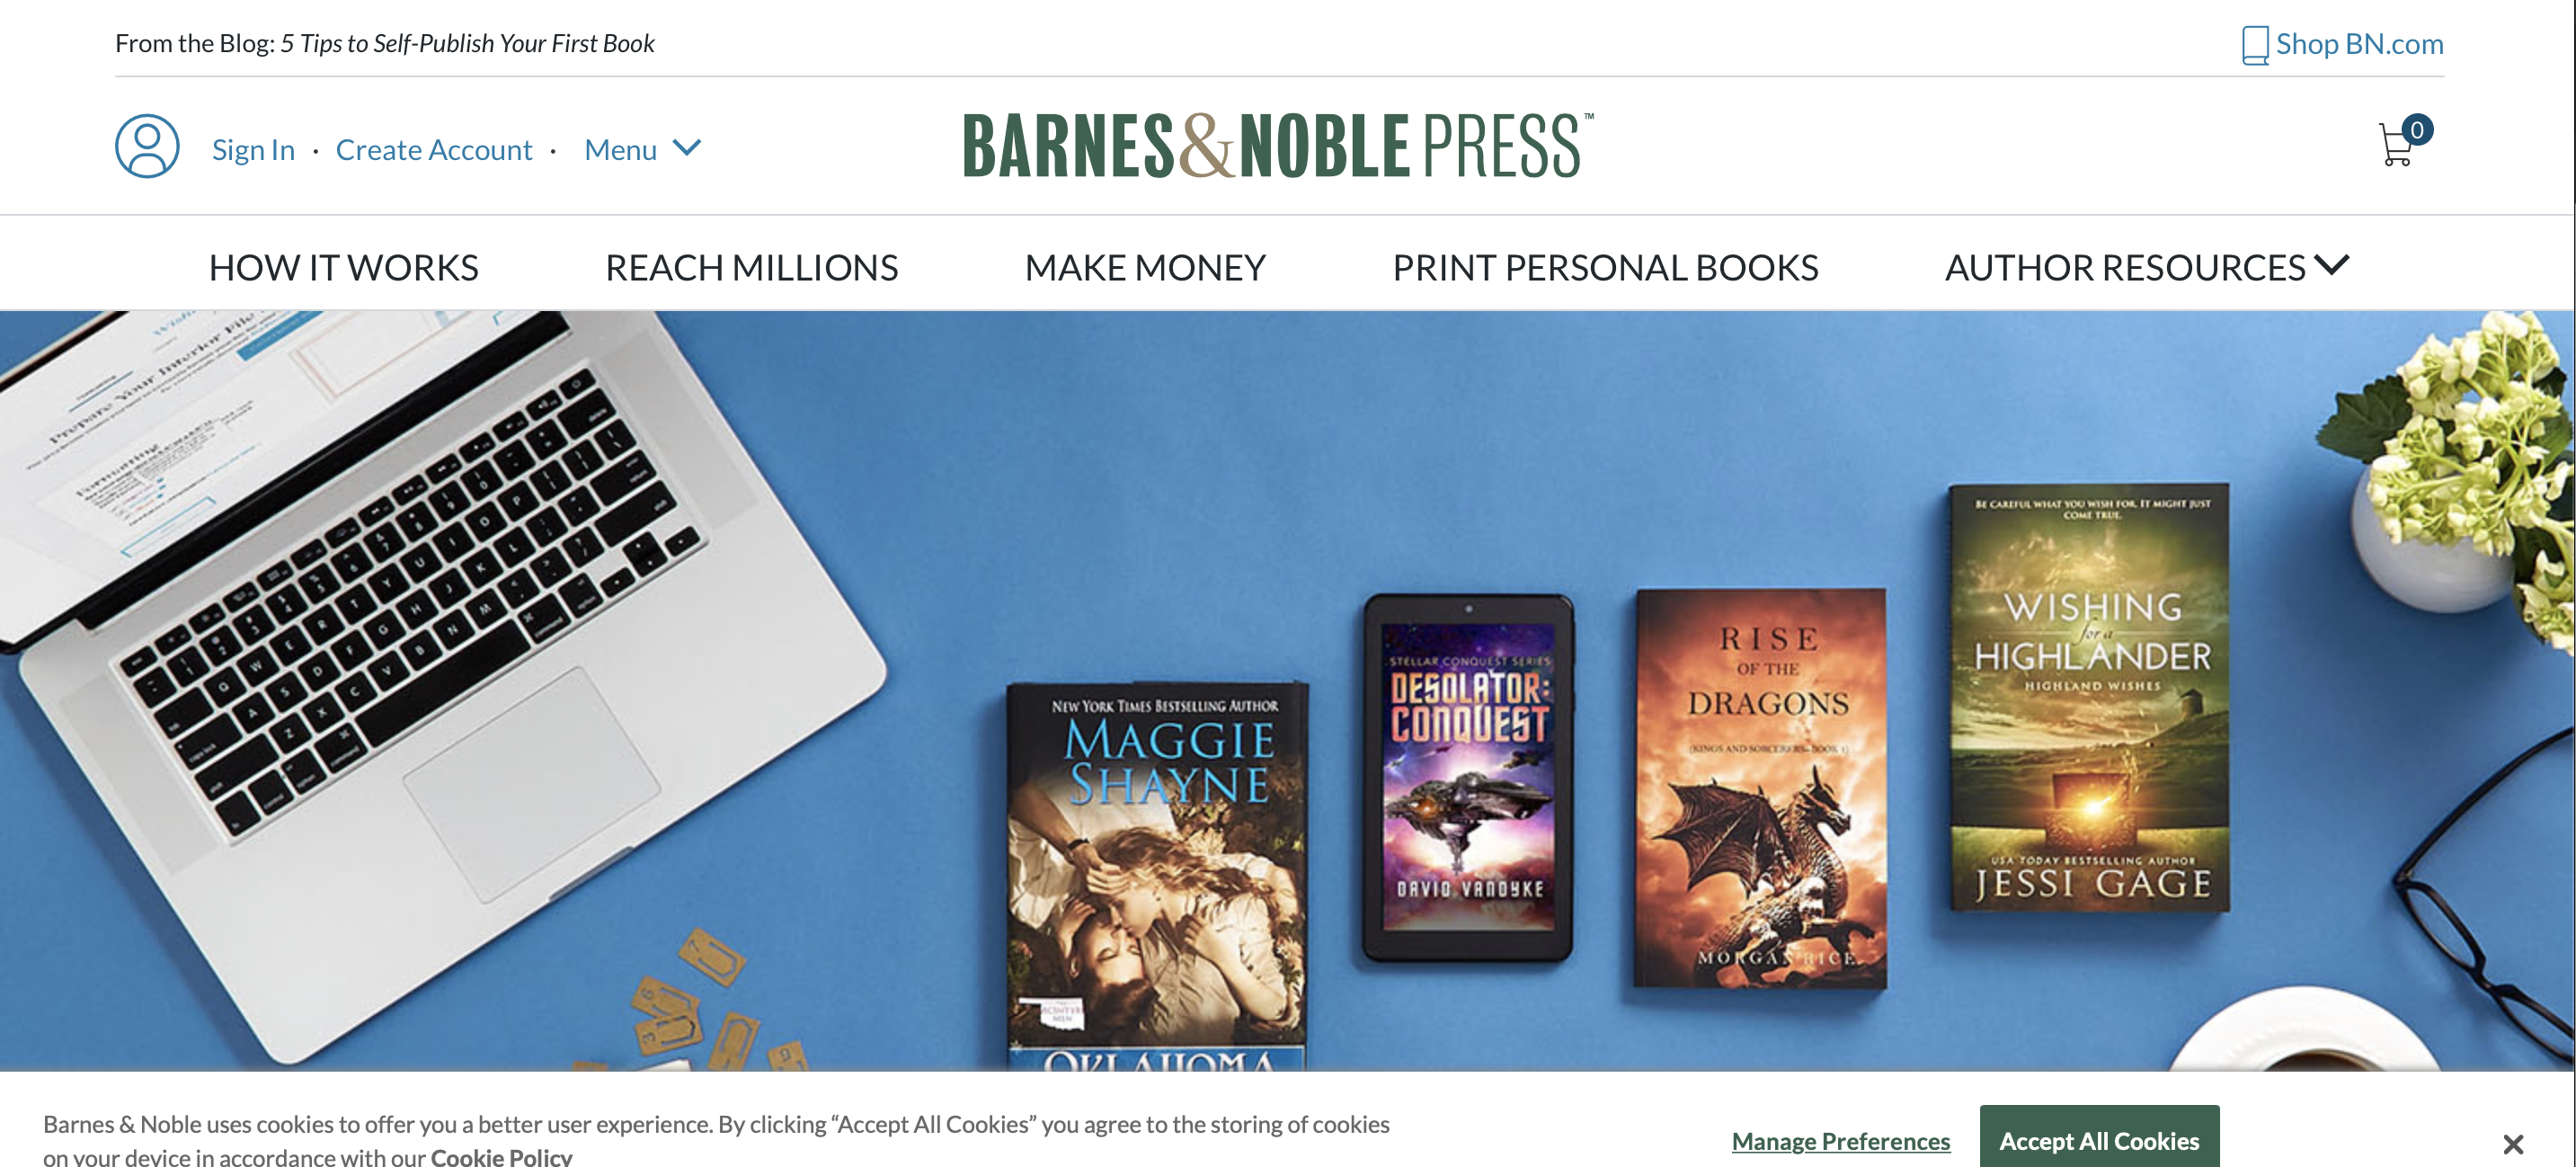 barnes and noble press